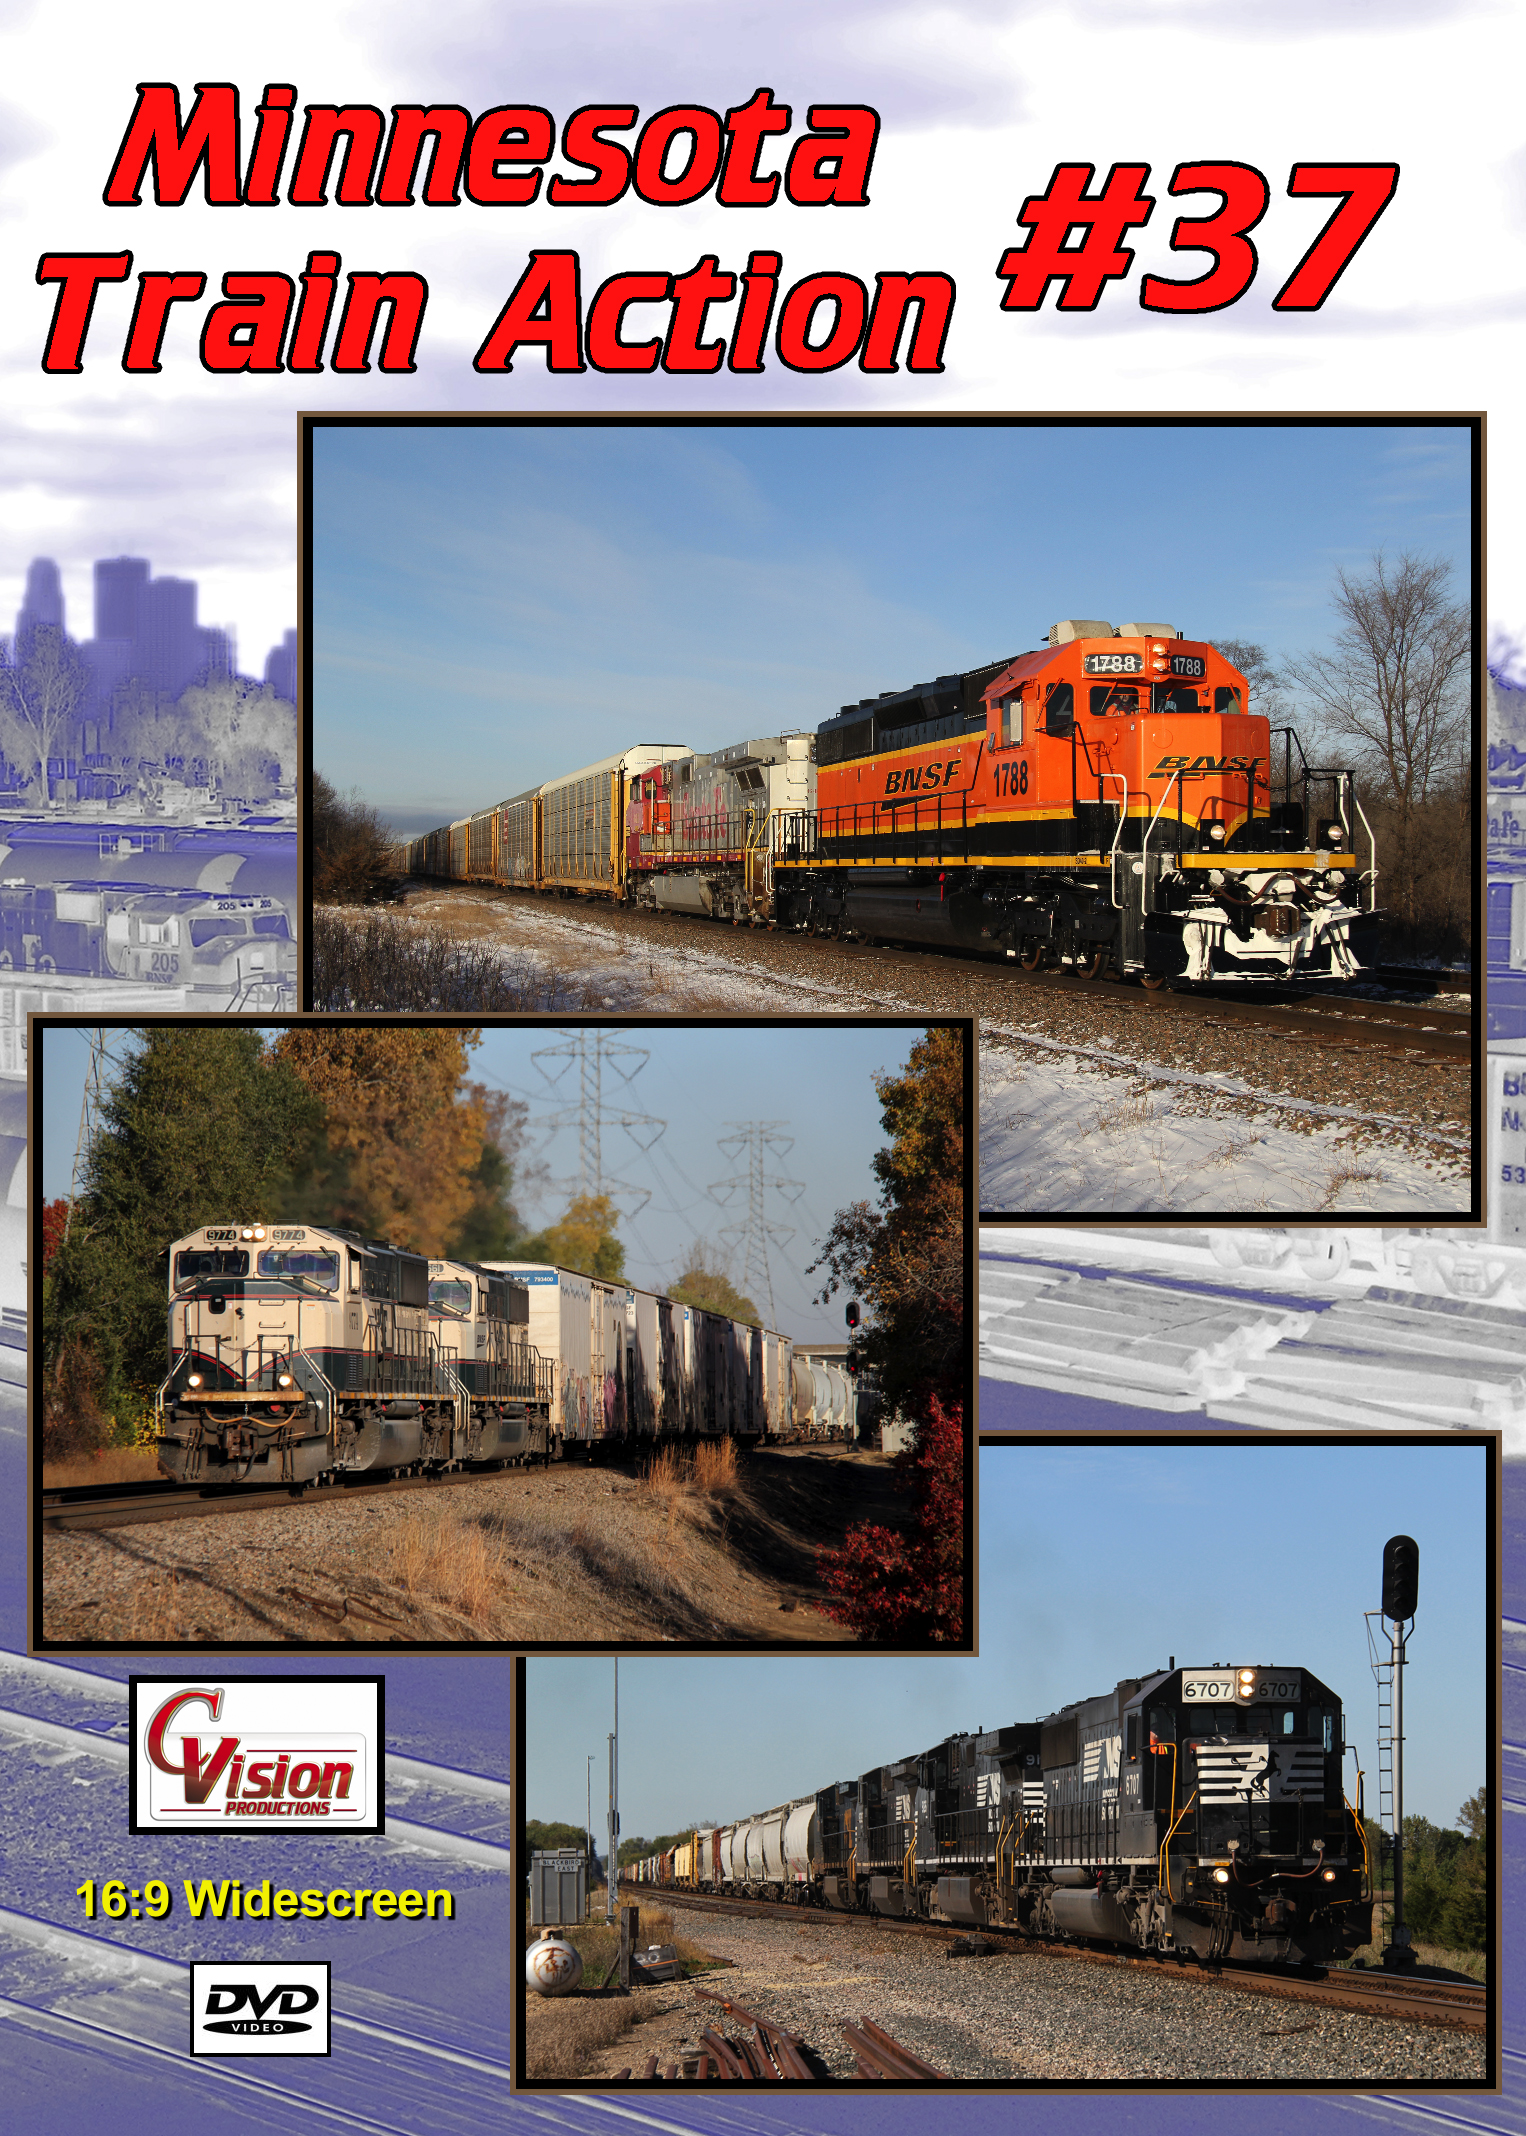 Minnesota Train Action Number 37 DVD C Vision Productions MTA37DVD